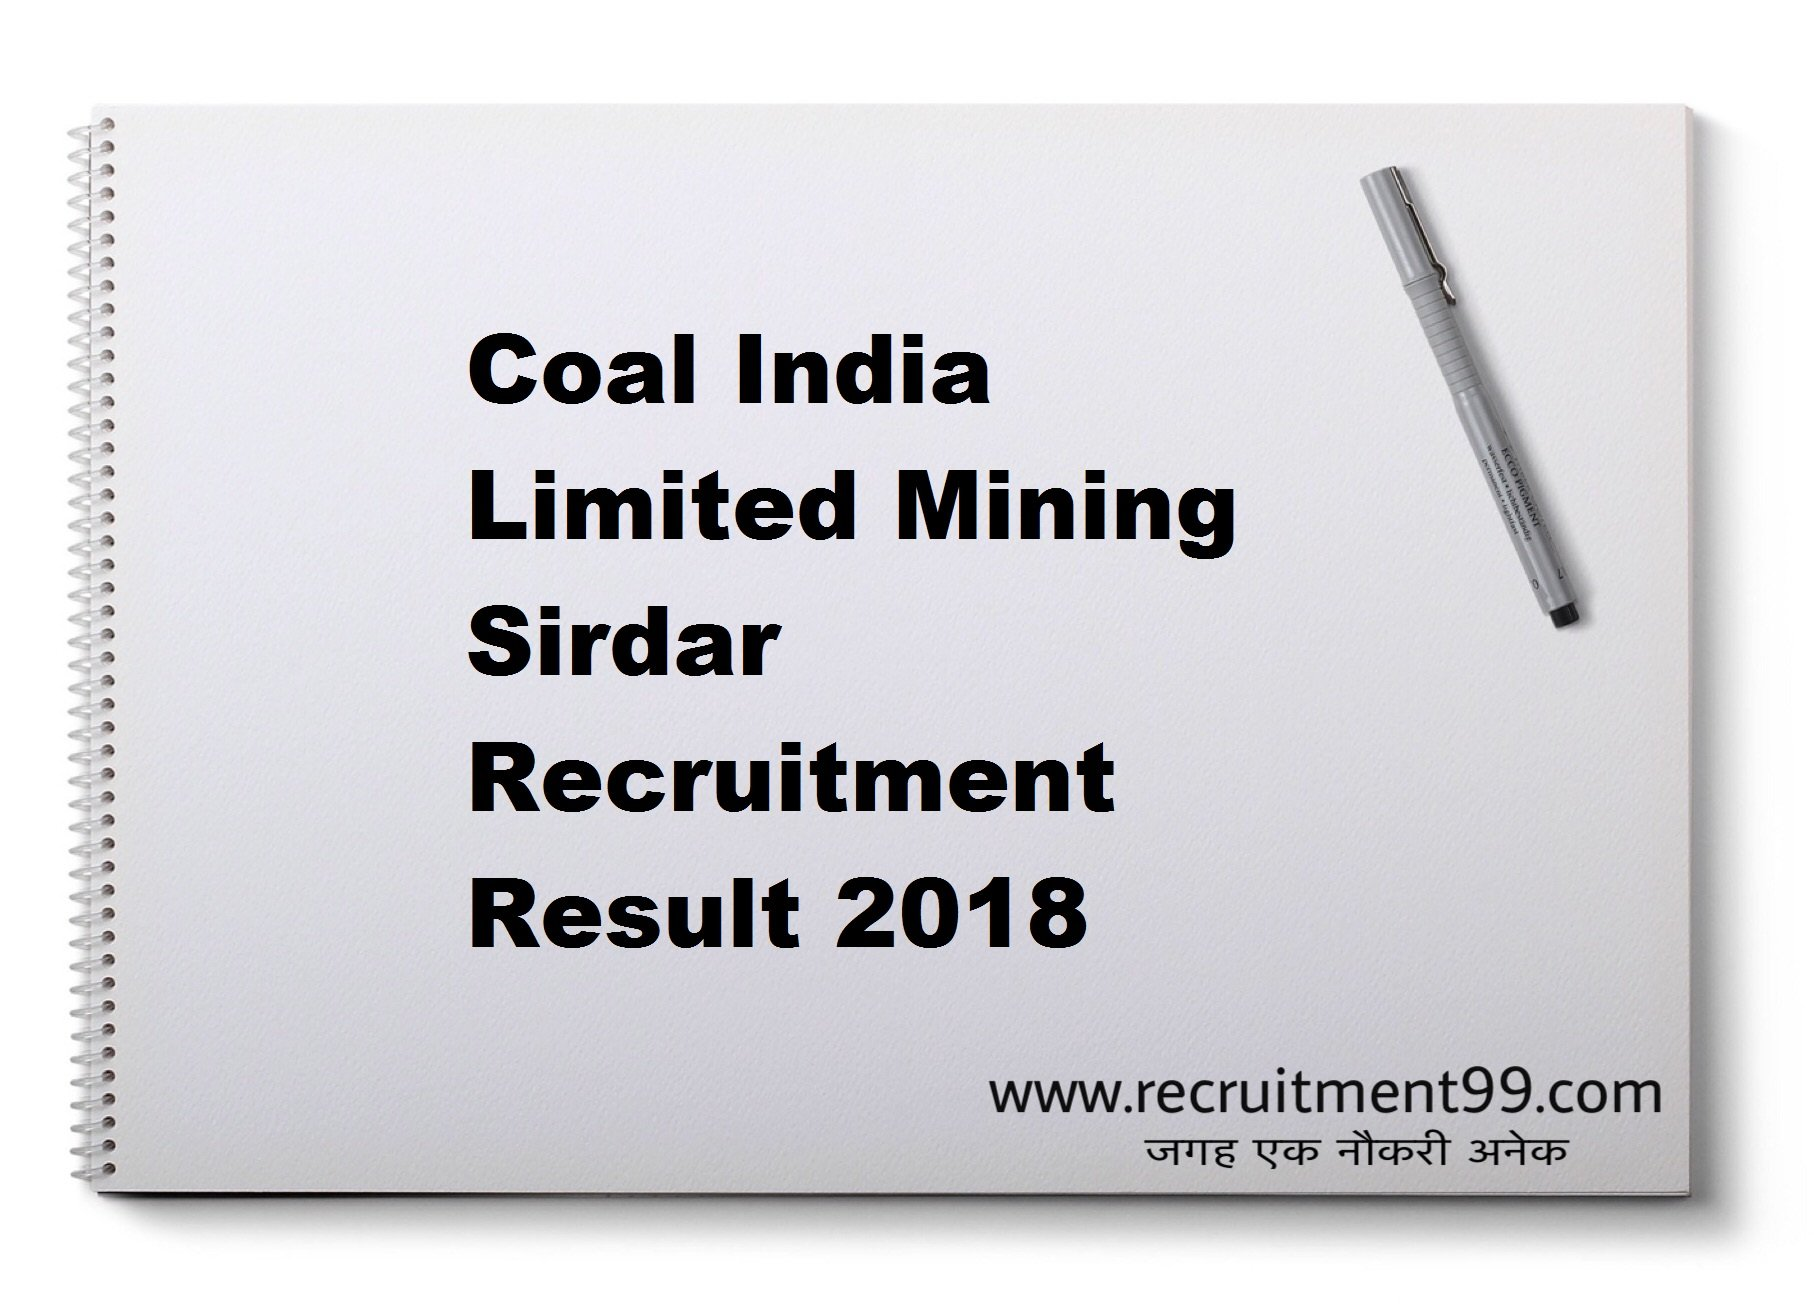 Coal India Limited Mining Sirdar Recruitment Admit Card Result 2018